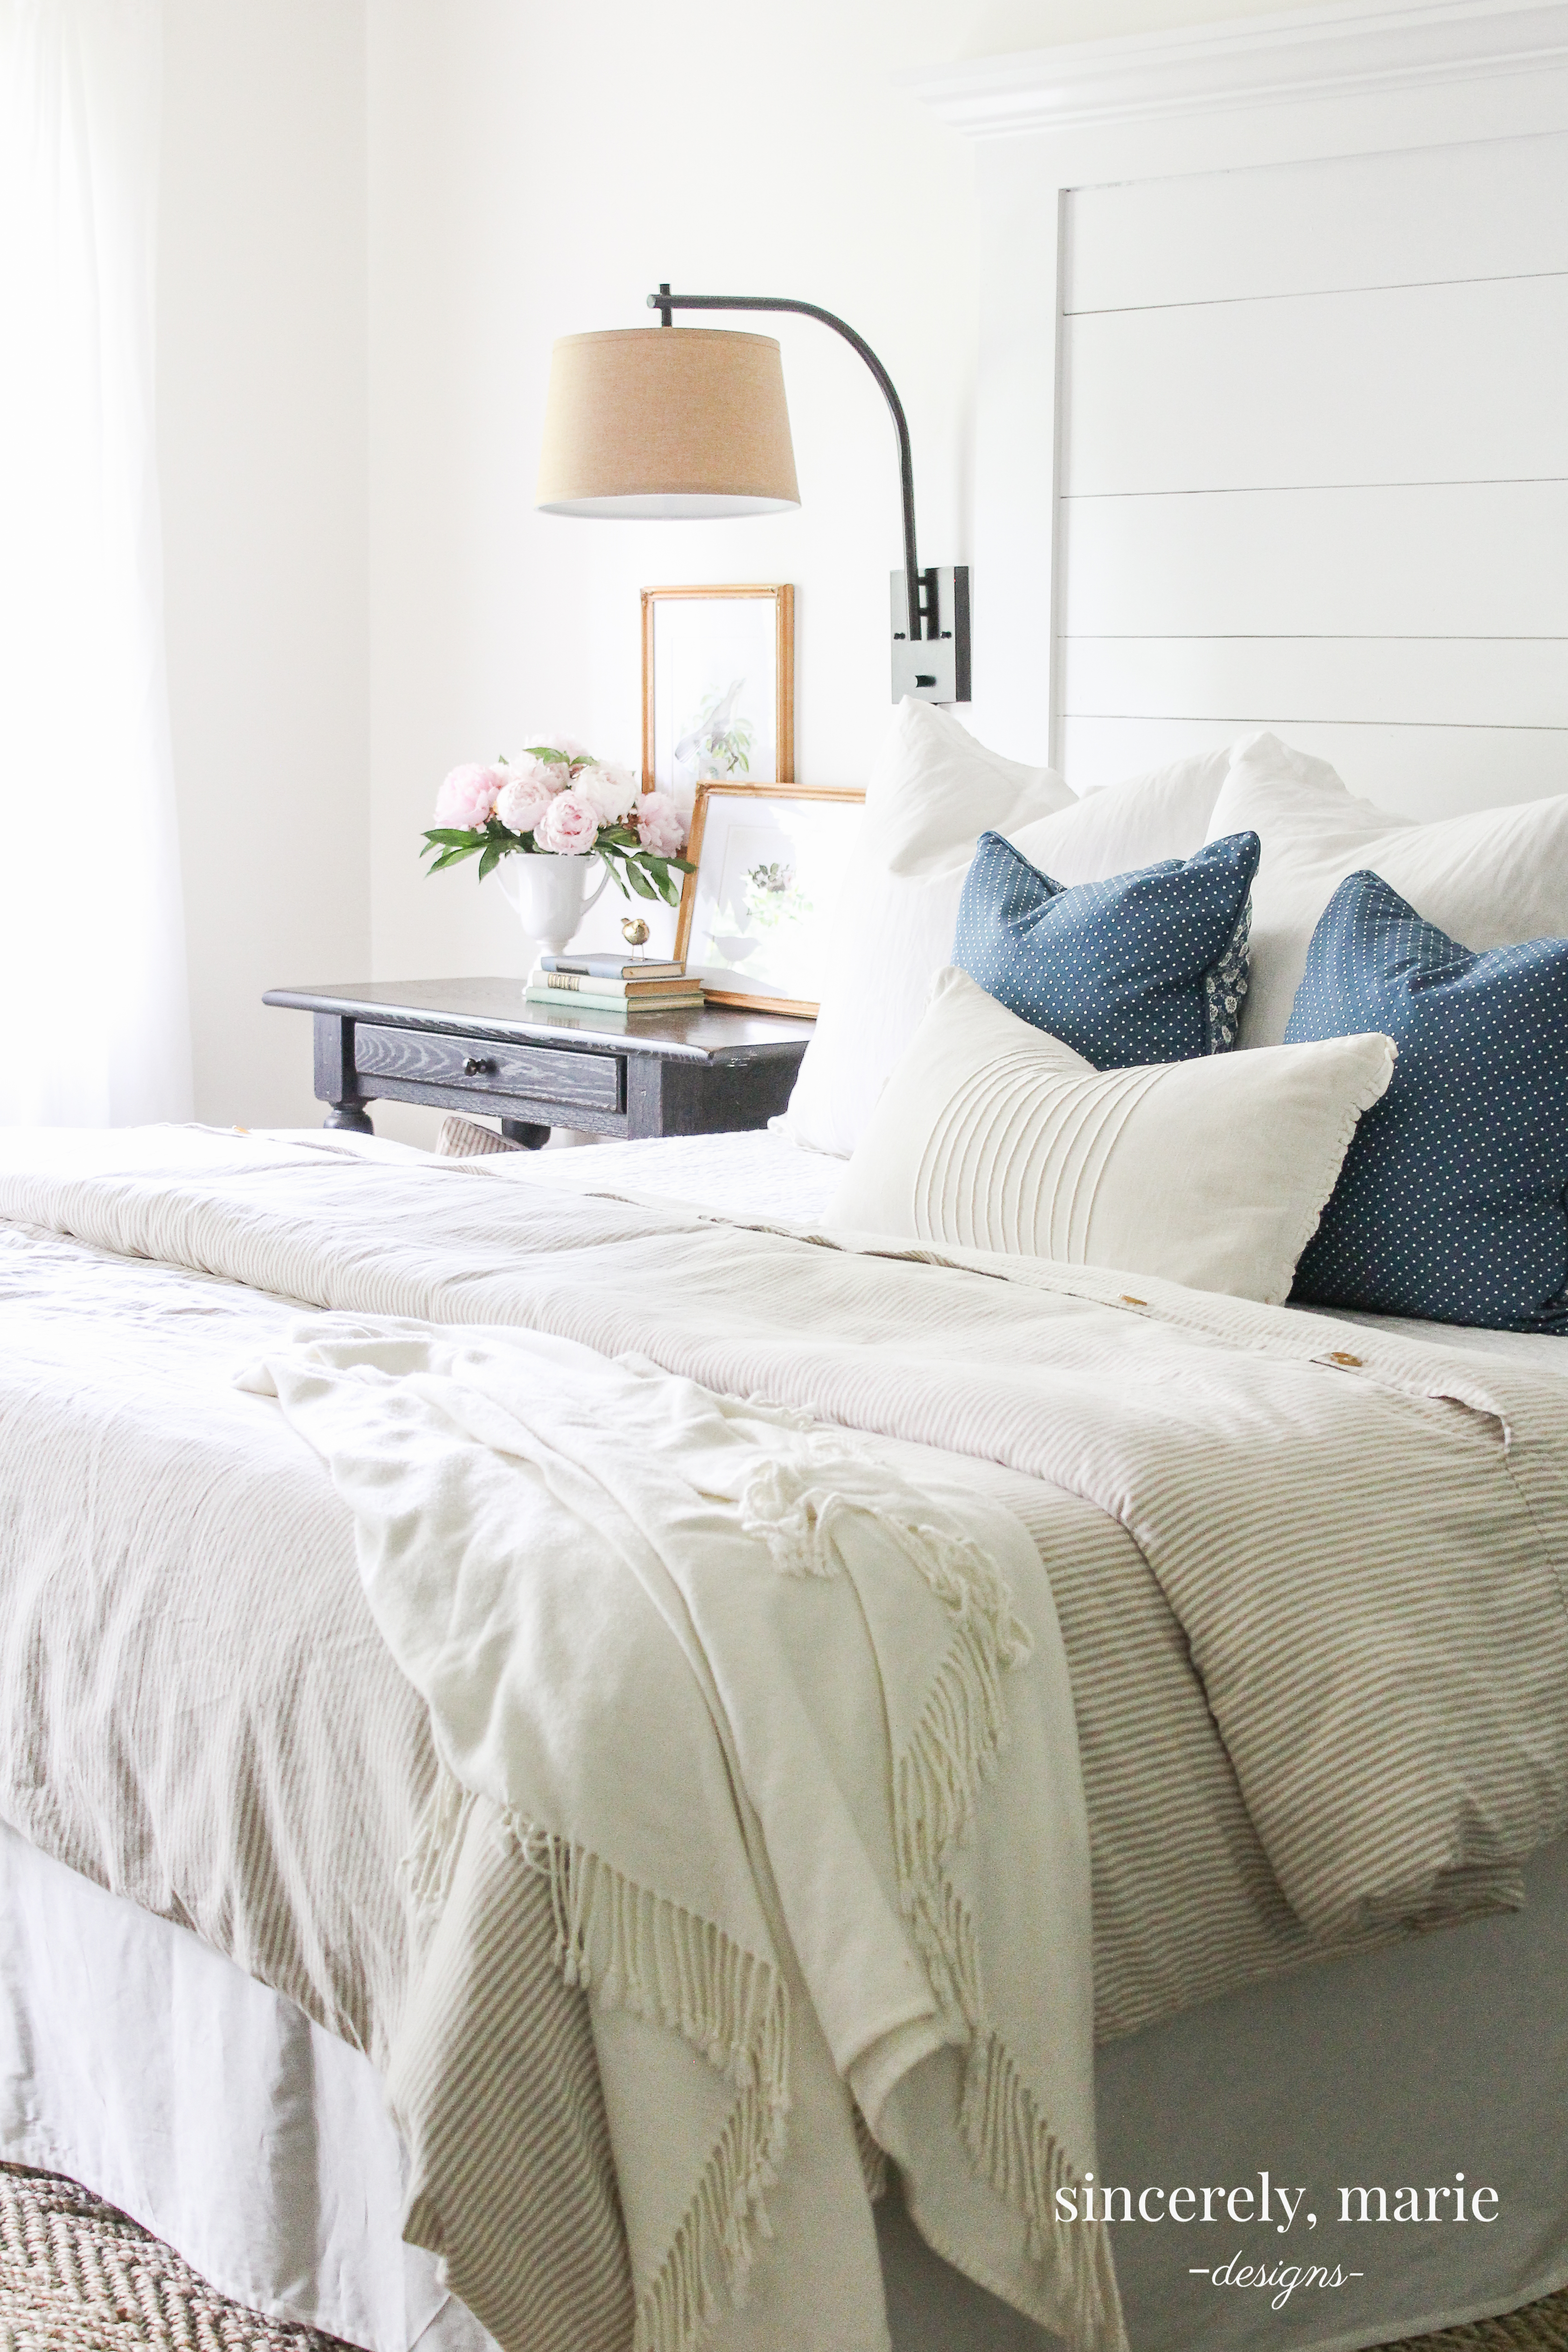 10 Ways to Create a Light & Airy Bedroom - Sincerely, Marie Designs